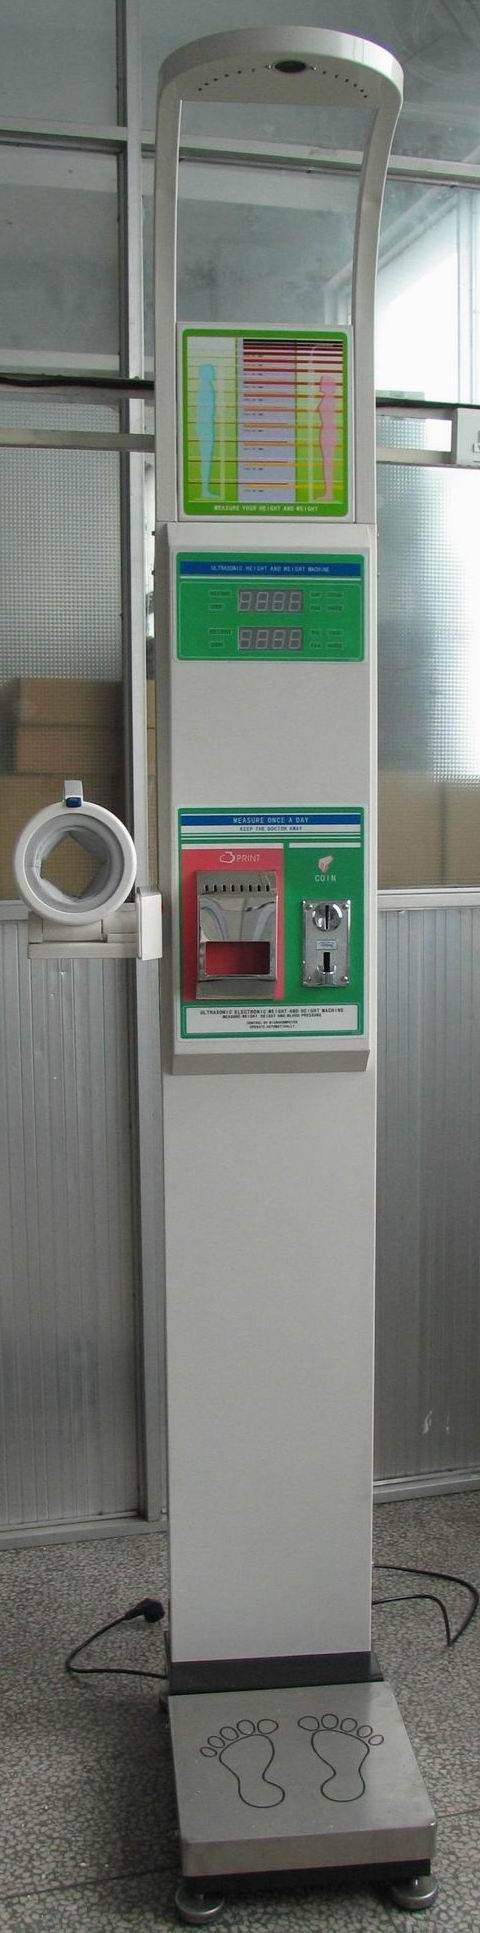 Coin-Operated Body Scale CVE-BS15